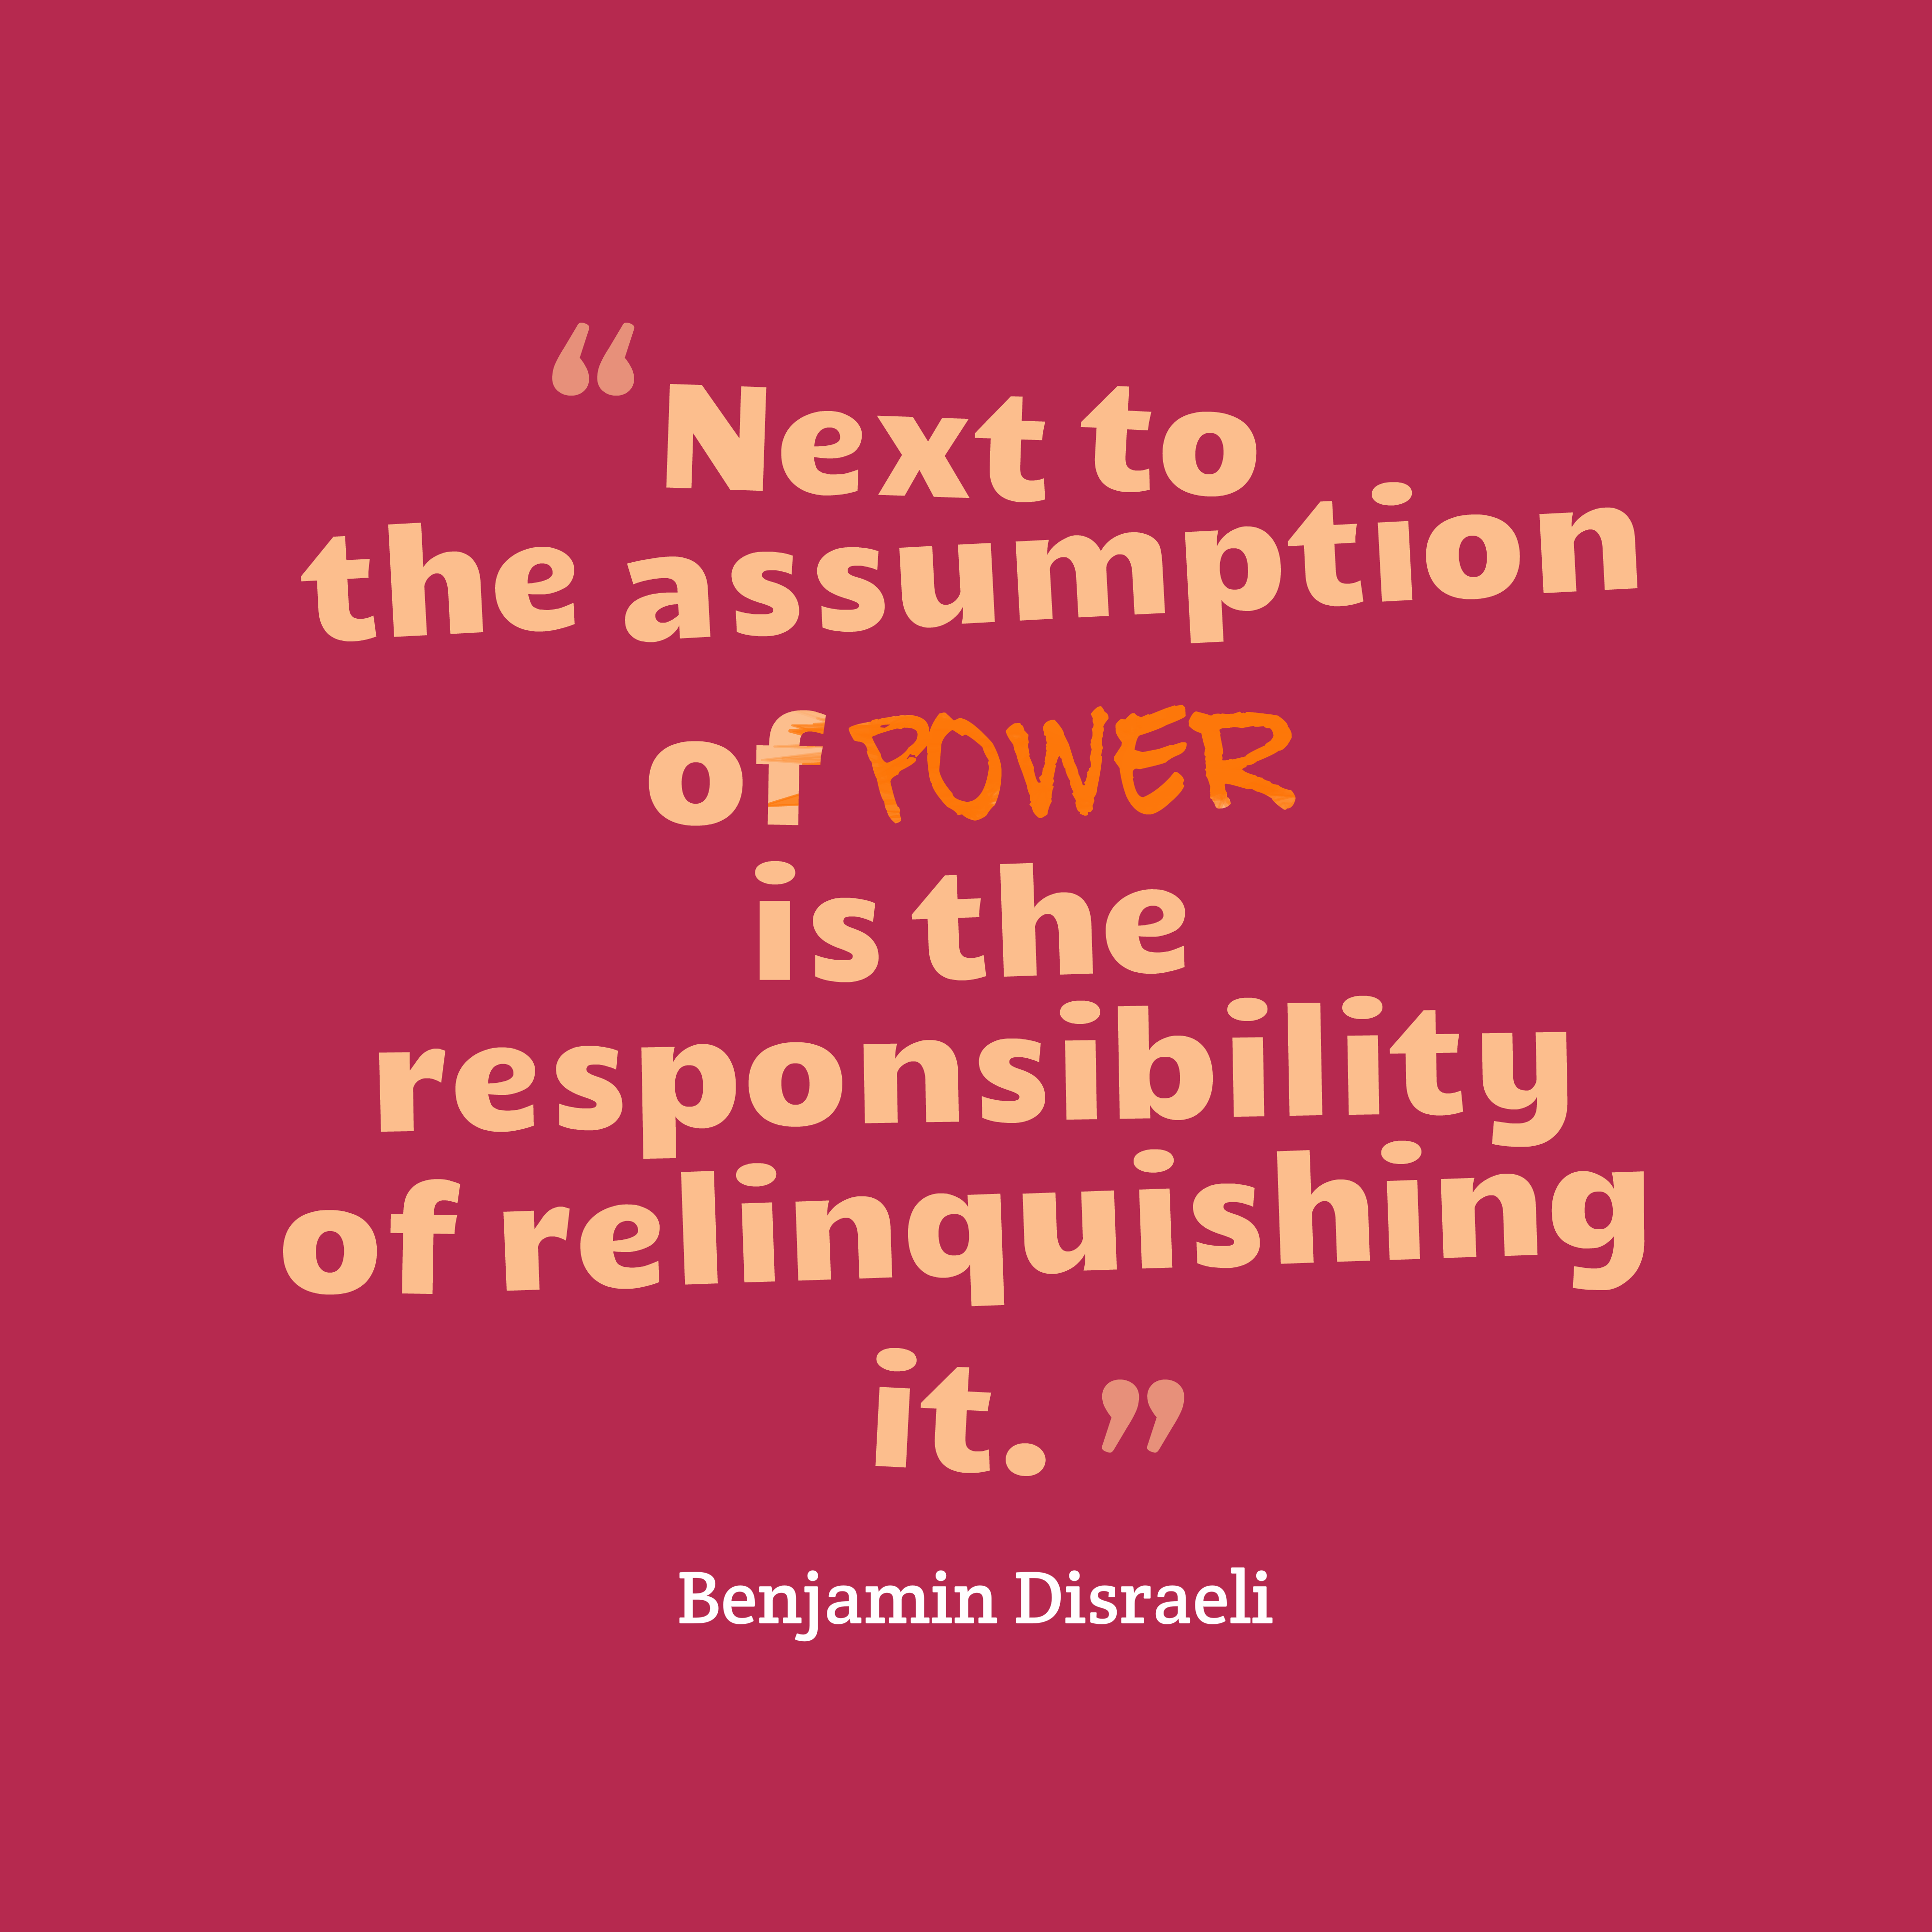 Quotes image of Next to the assumption of power is the responsibility of relinquishing it.